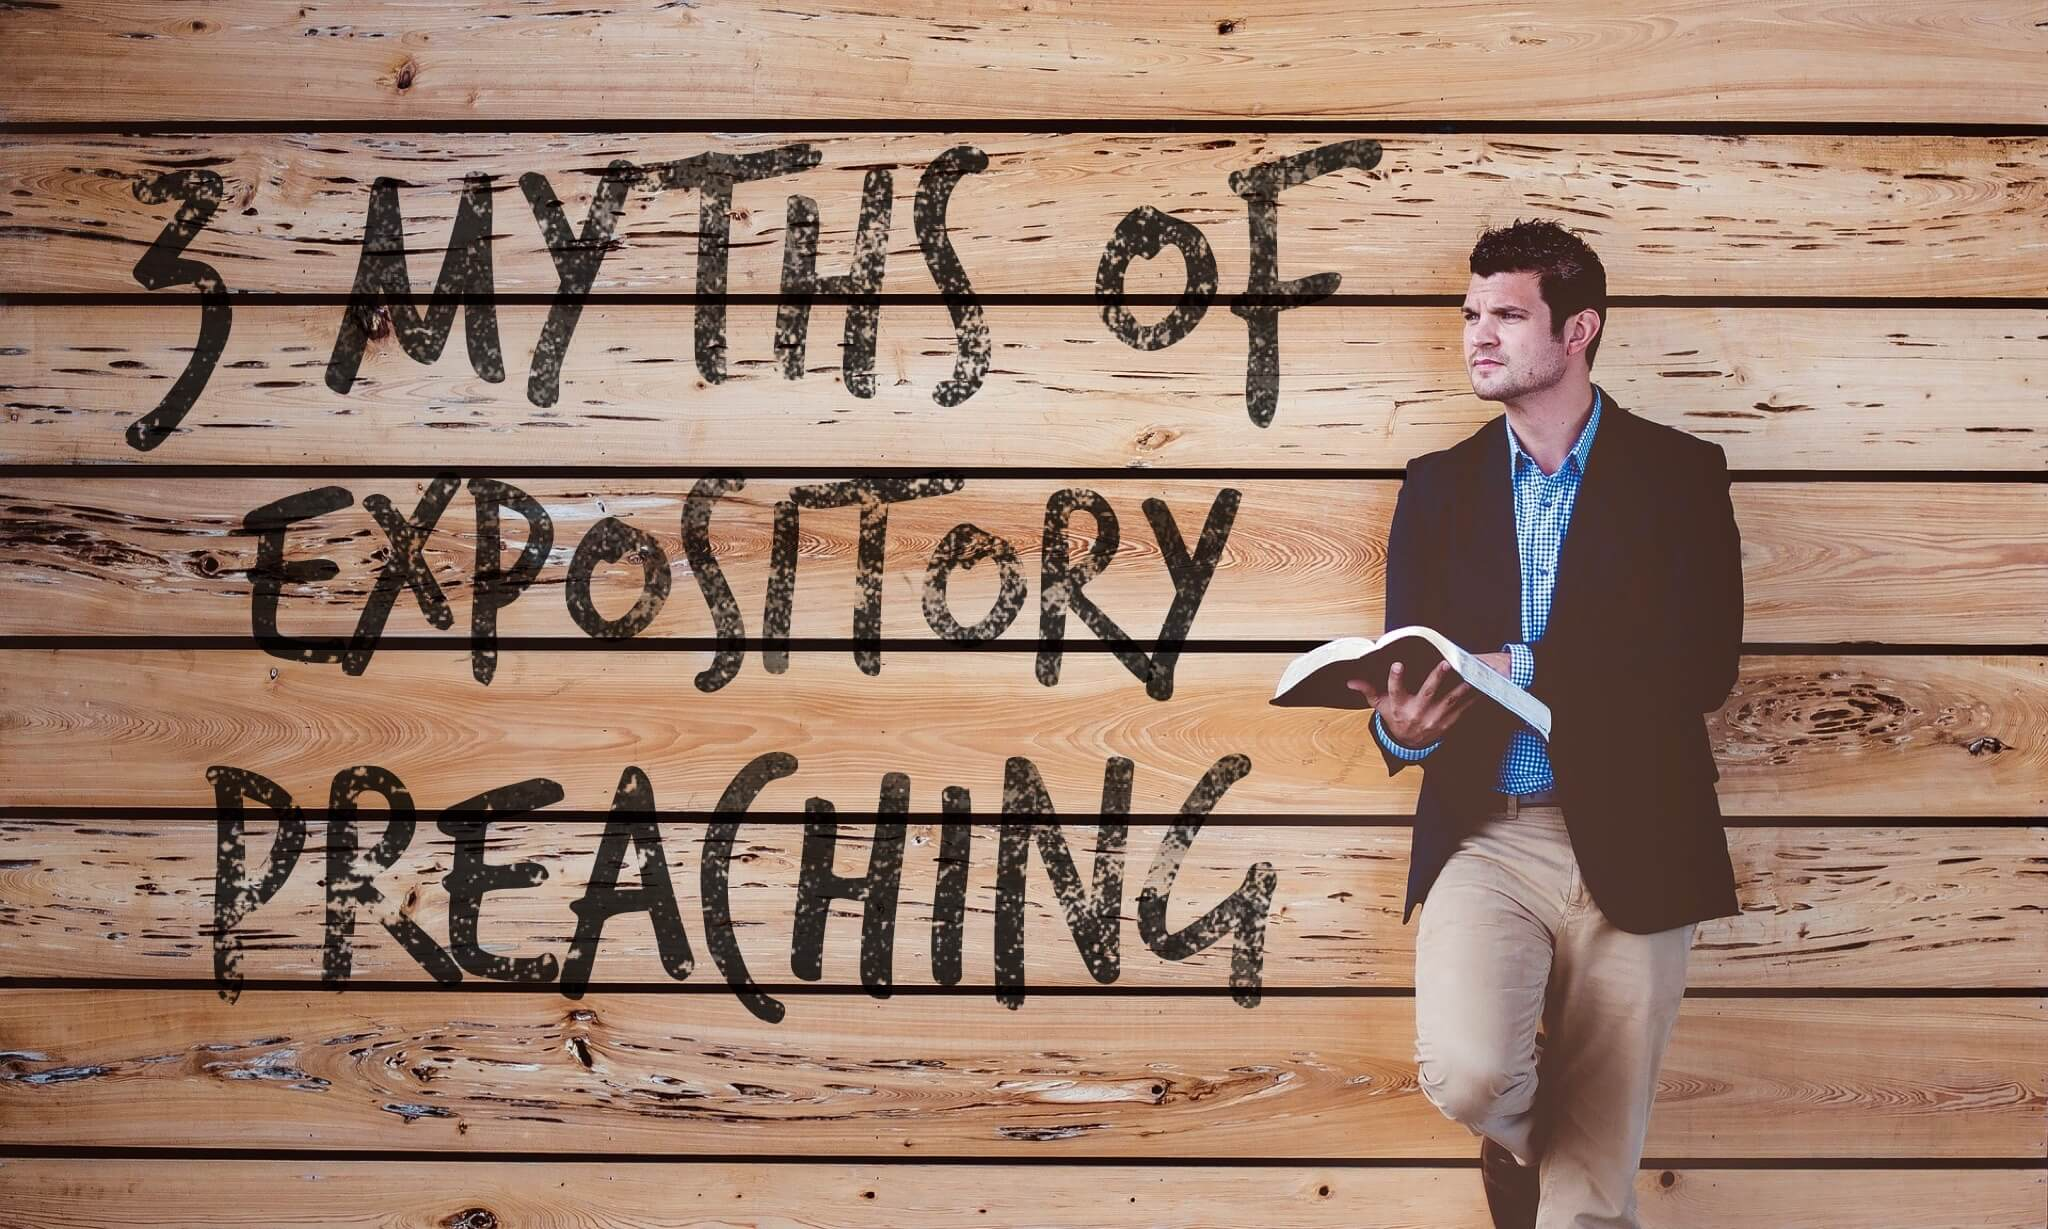 3 Myths of Expository Preaching - Pro Preacher